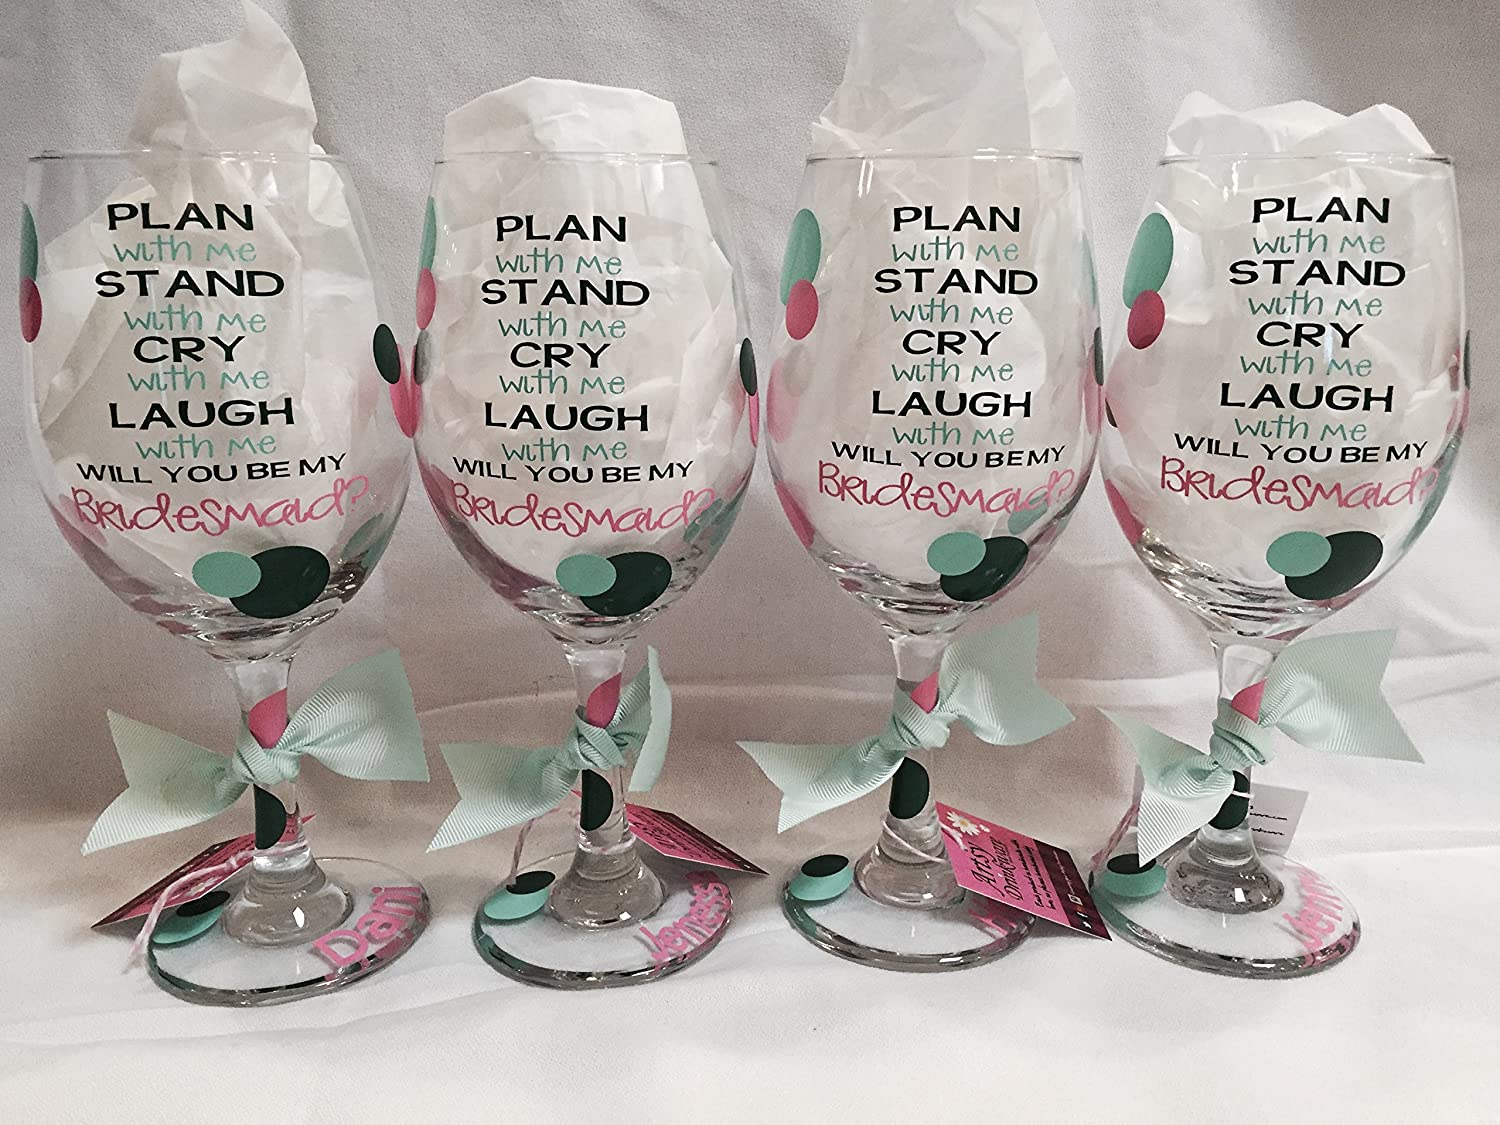 84a82e5eb13 Amazon.com: Bridal Party Wine Glasses, Bridal party gift, Will you be my  Maid of Honor, Bridesmaid gift, Plan with me, Stand with me (one glass):  Handmade